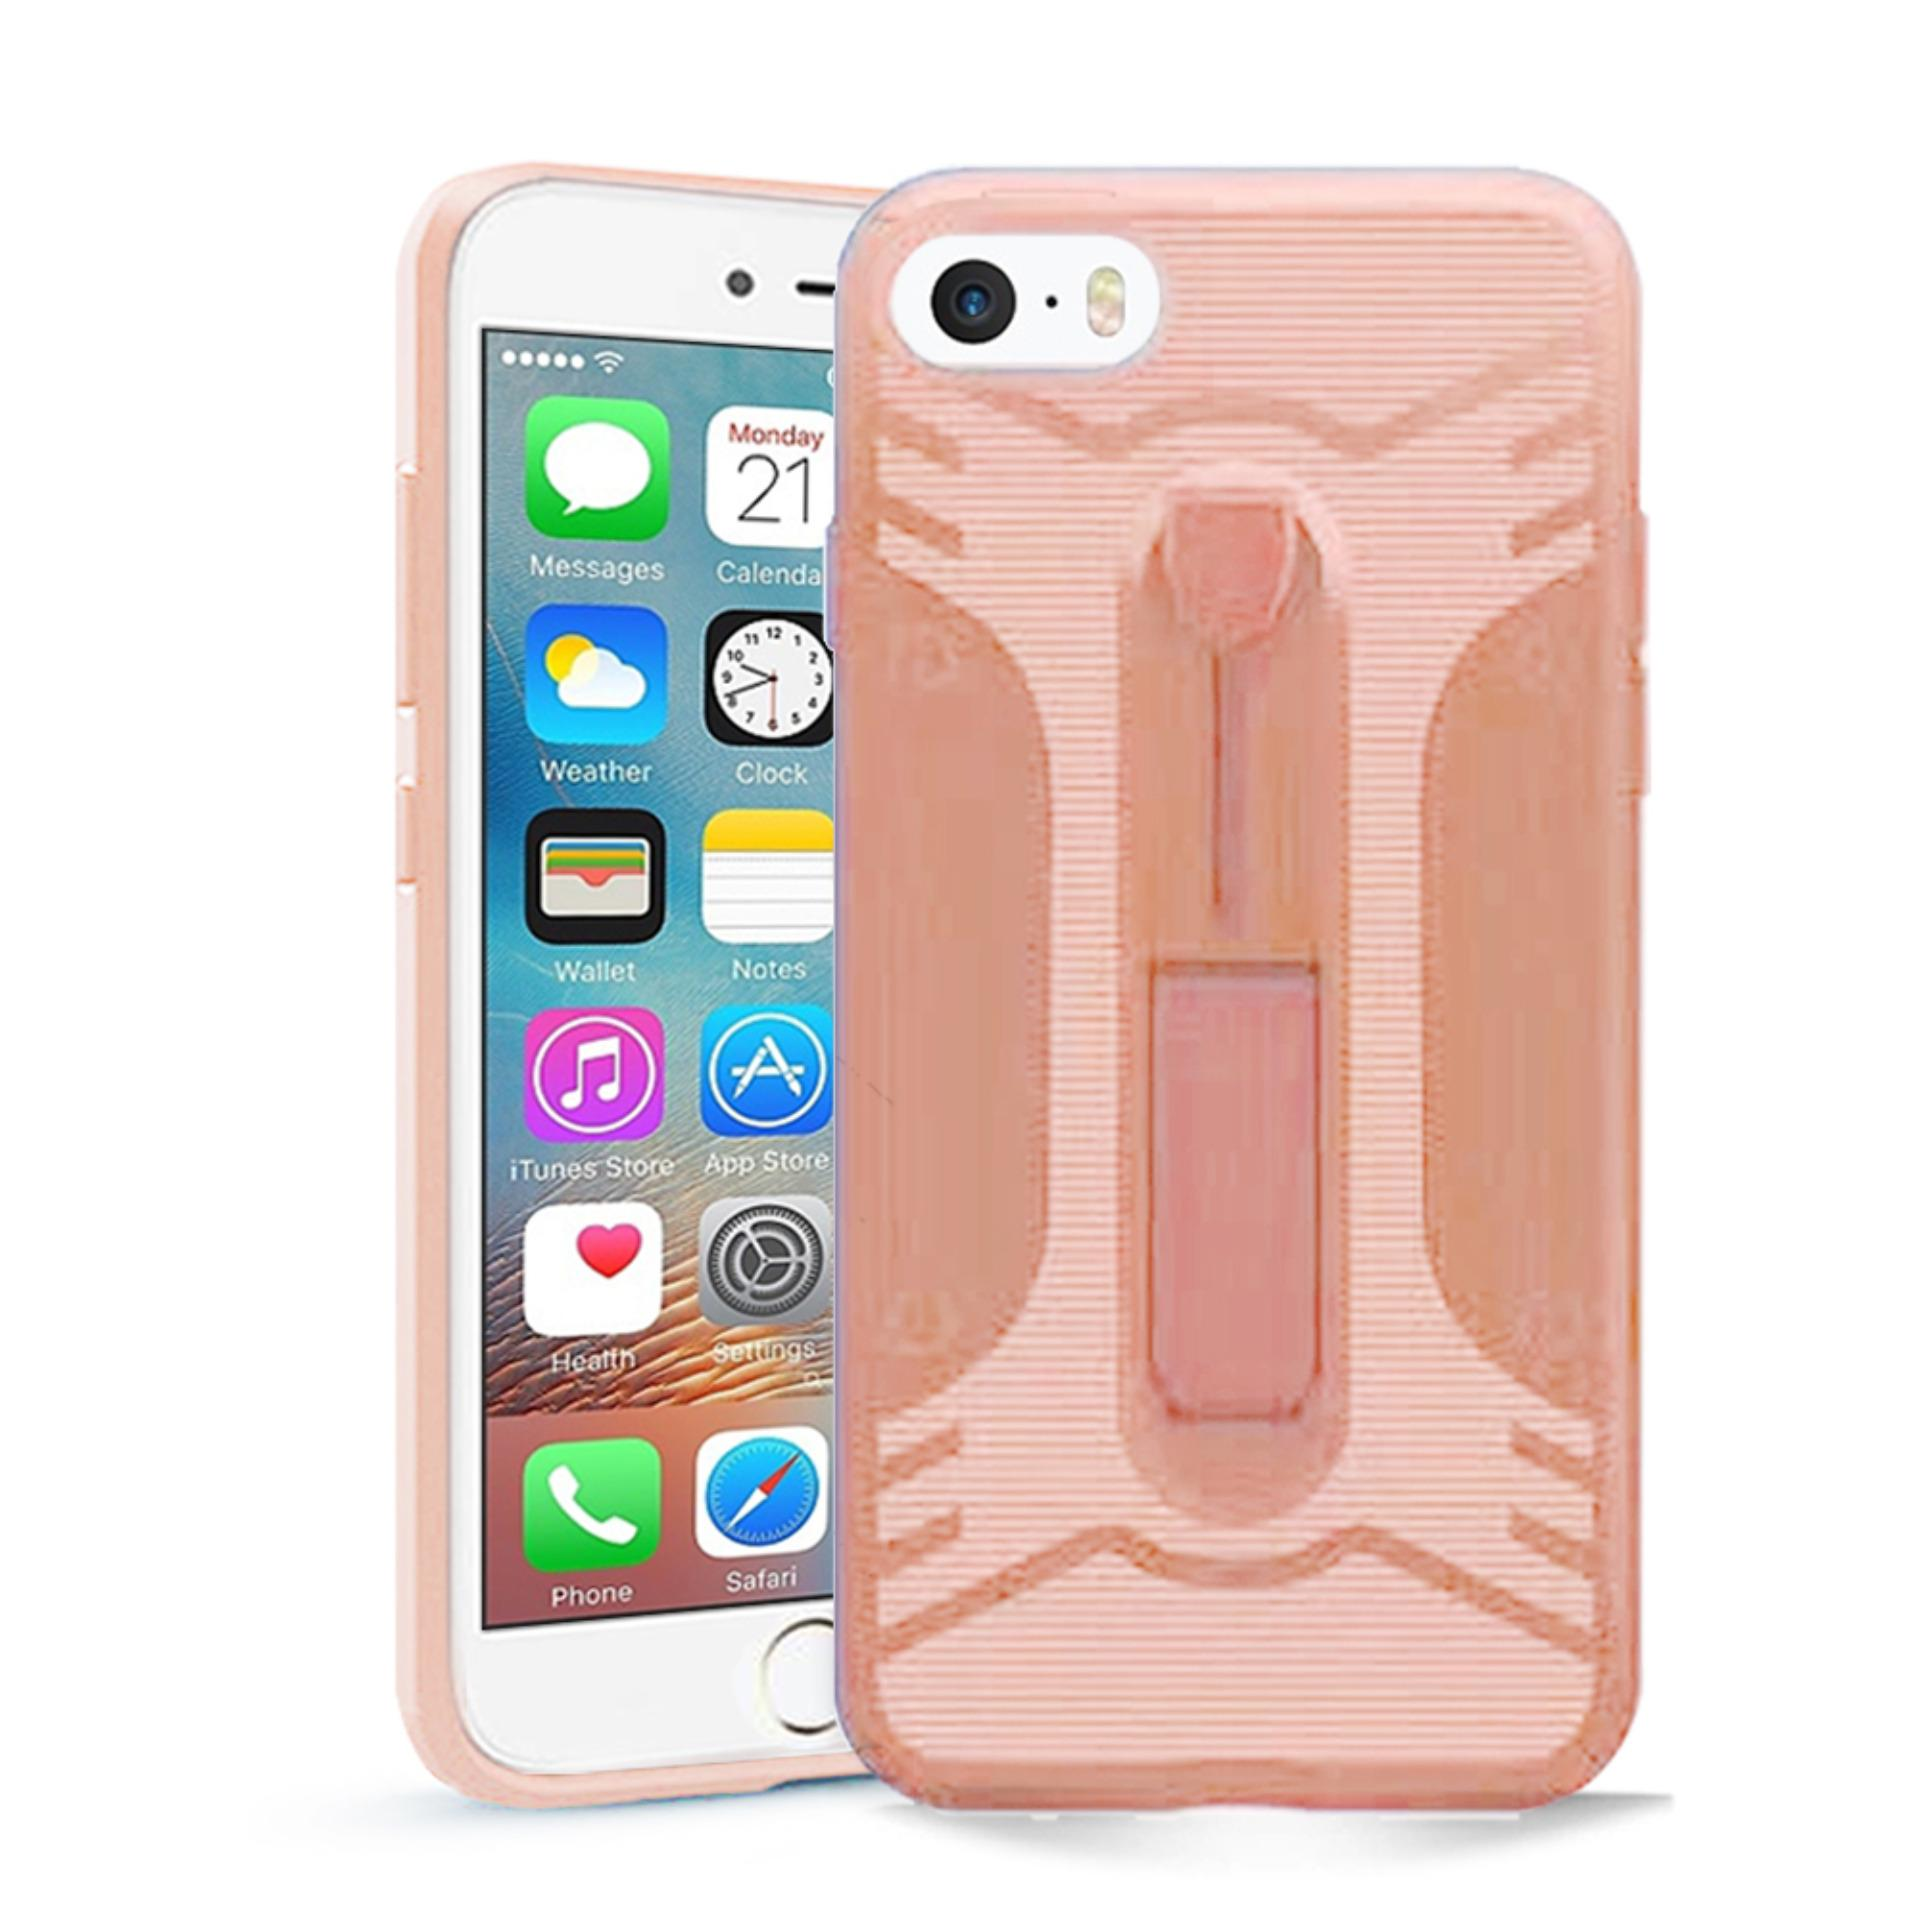 Nice Case Jelly Motif Kartun Case For Iphone 5 Merah Putih Spec Source · Case Ipaky Iphone 5 5S 5SE 3in1 Finger Ring Softcase Iron Man Momostick Standing ...